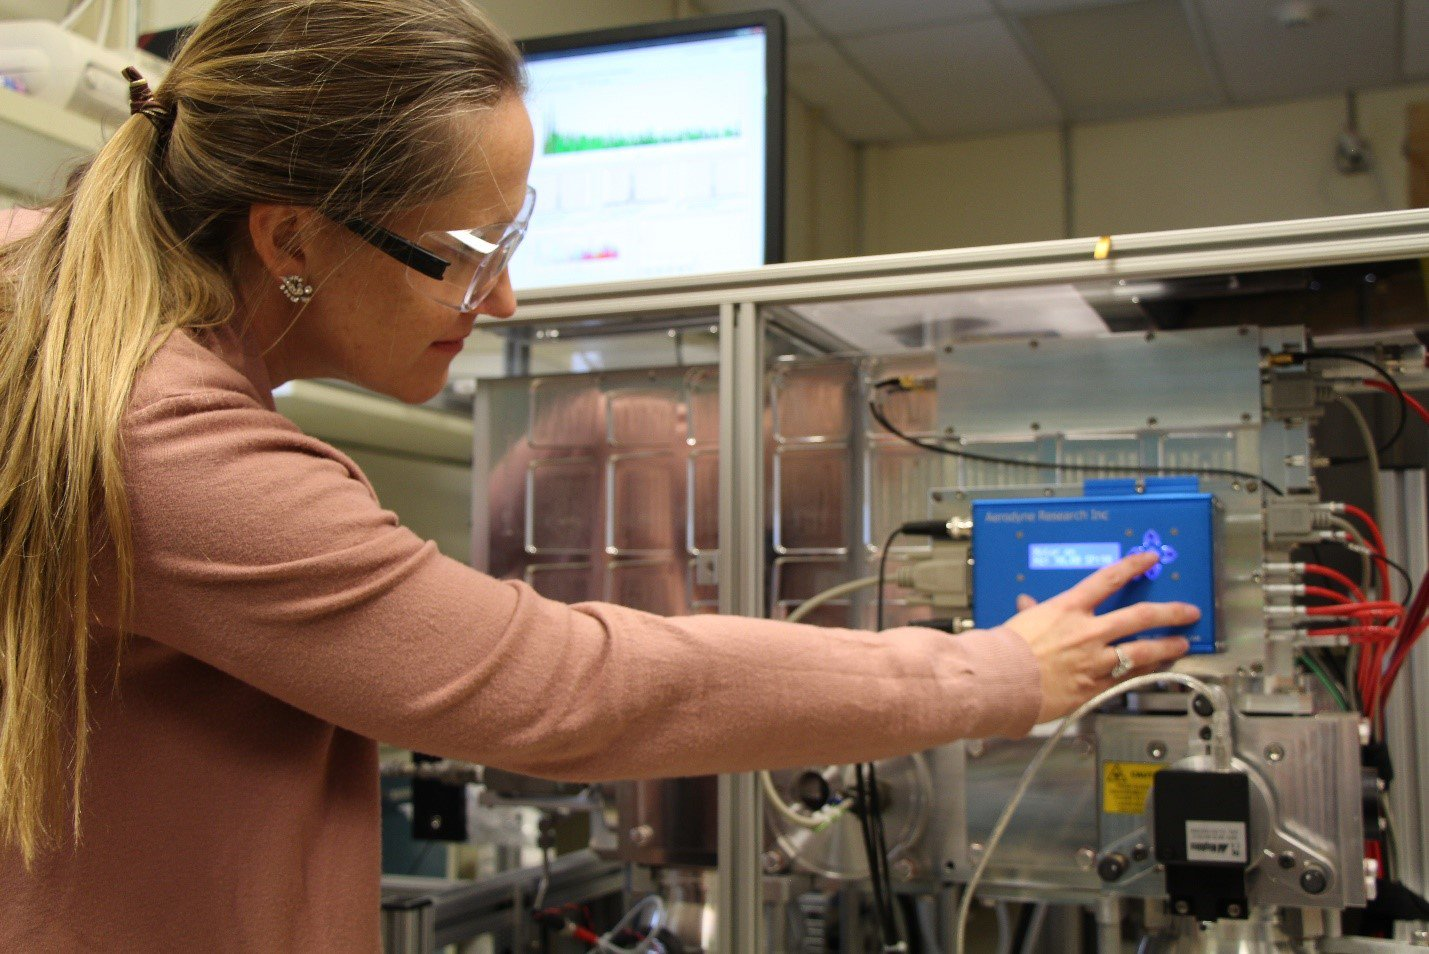 Allison C. Aiken is hard at work at Los Alamos National Laboratory. Photo is courtesy of Aiken.